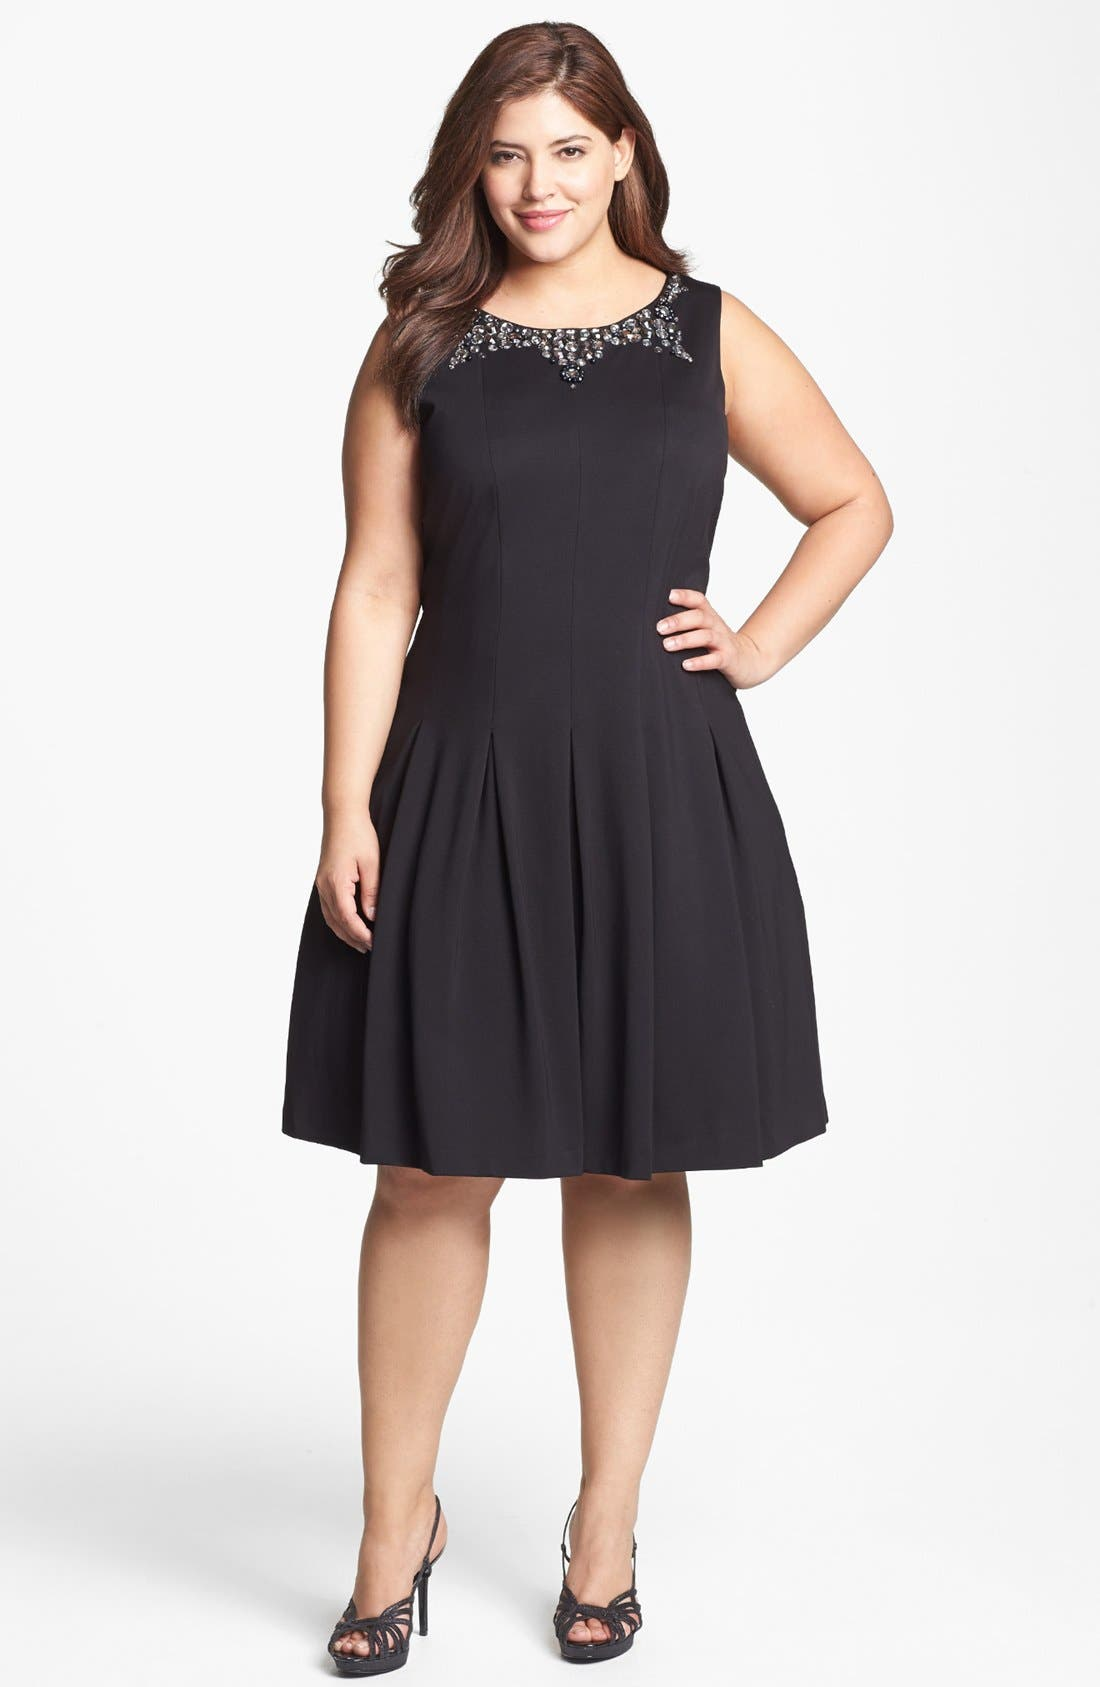 Alternate Image 1 Selected - Adrianna Papell Embellished Double Knit Fit & Flare Dress